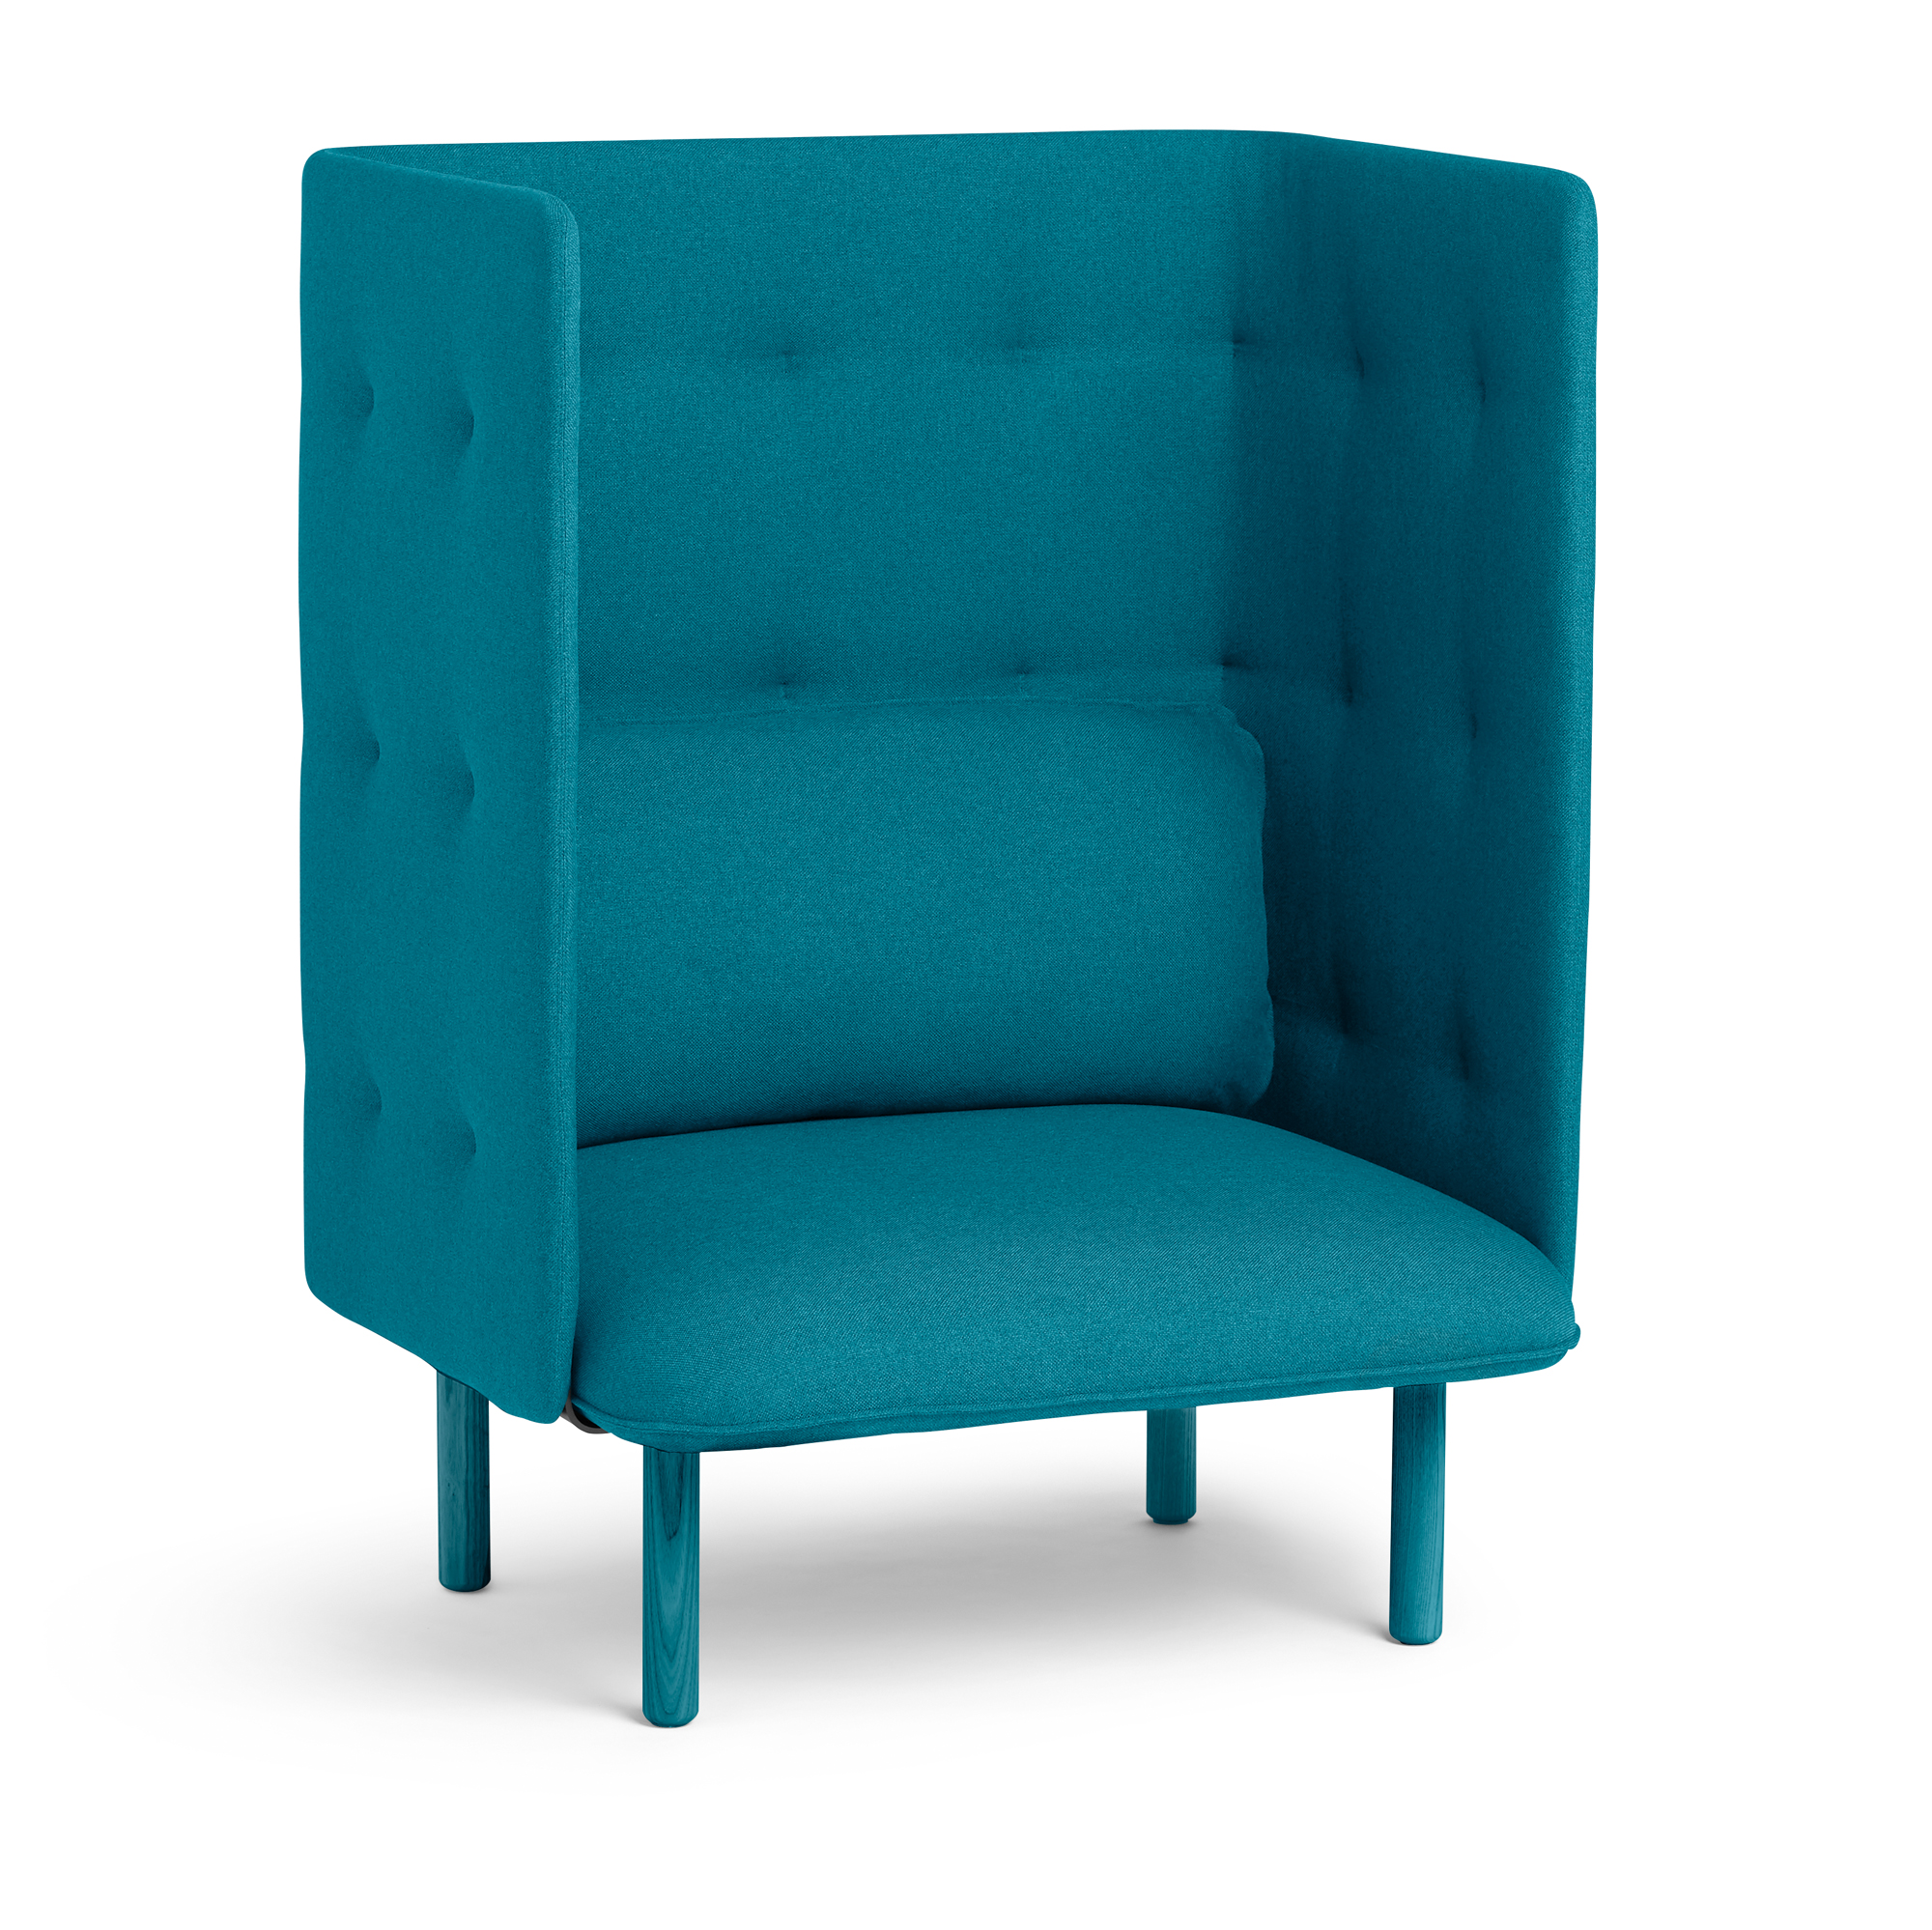 turquoise lounge chair tech furniture teal qt privacy modern seating hi res